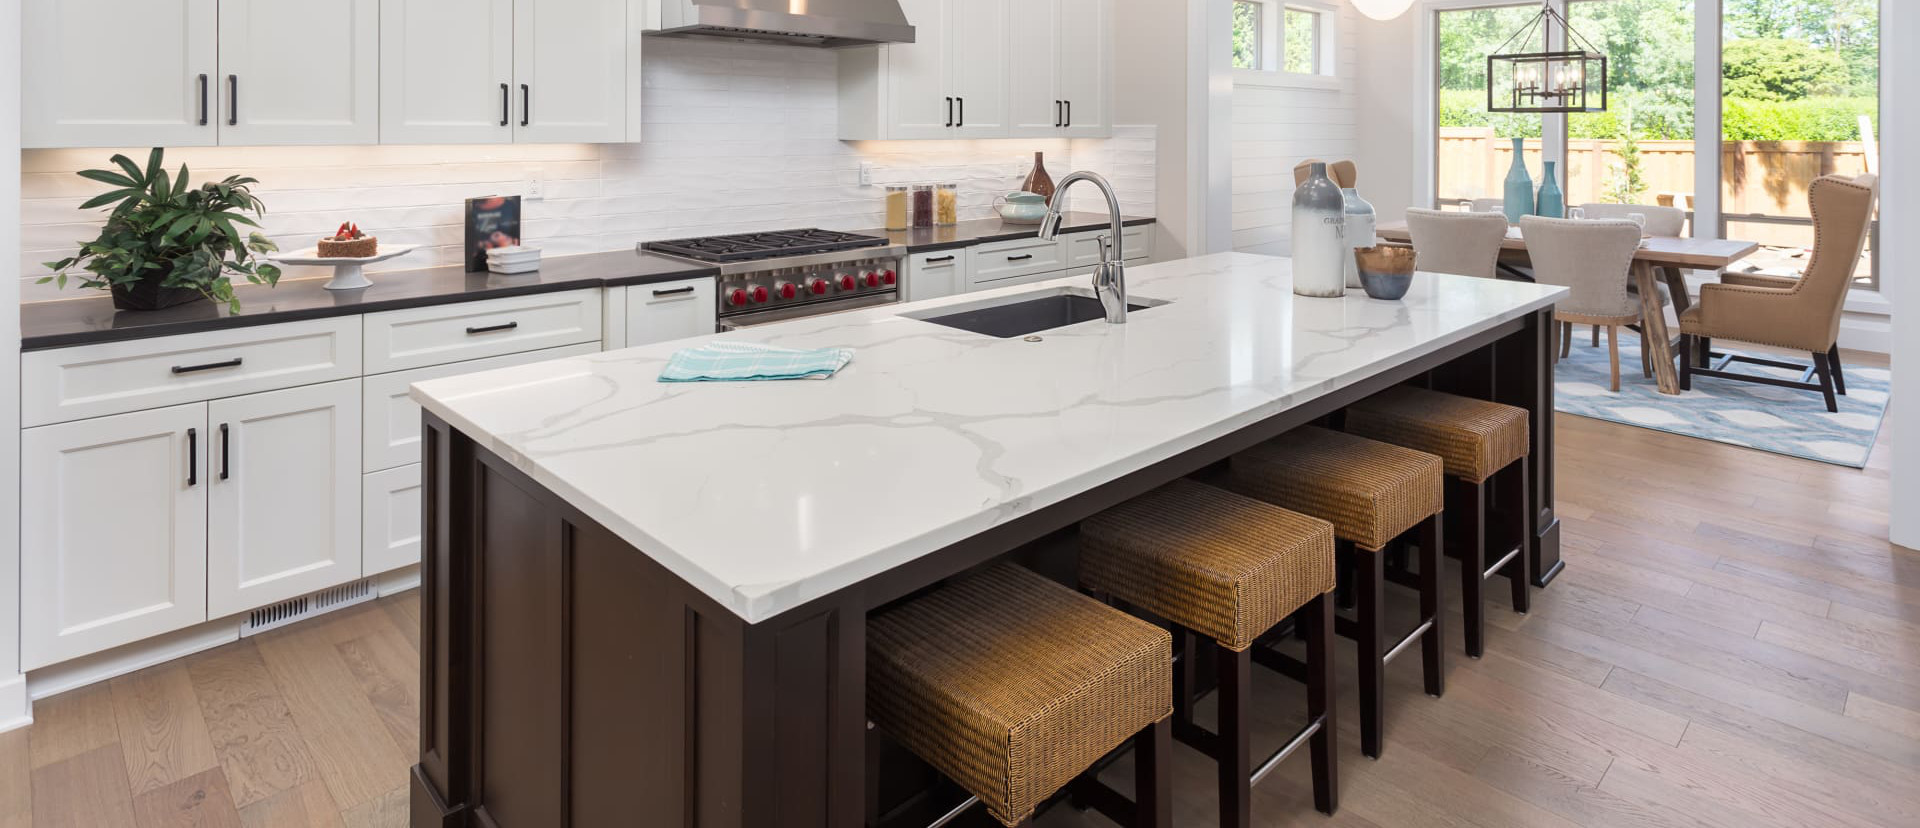 Quartz Countertop Instillation